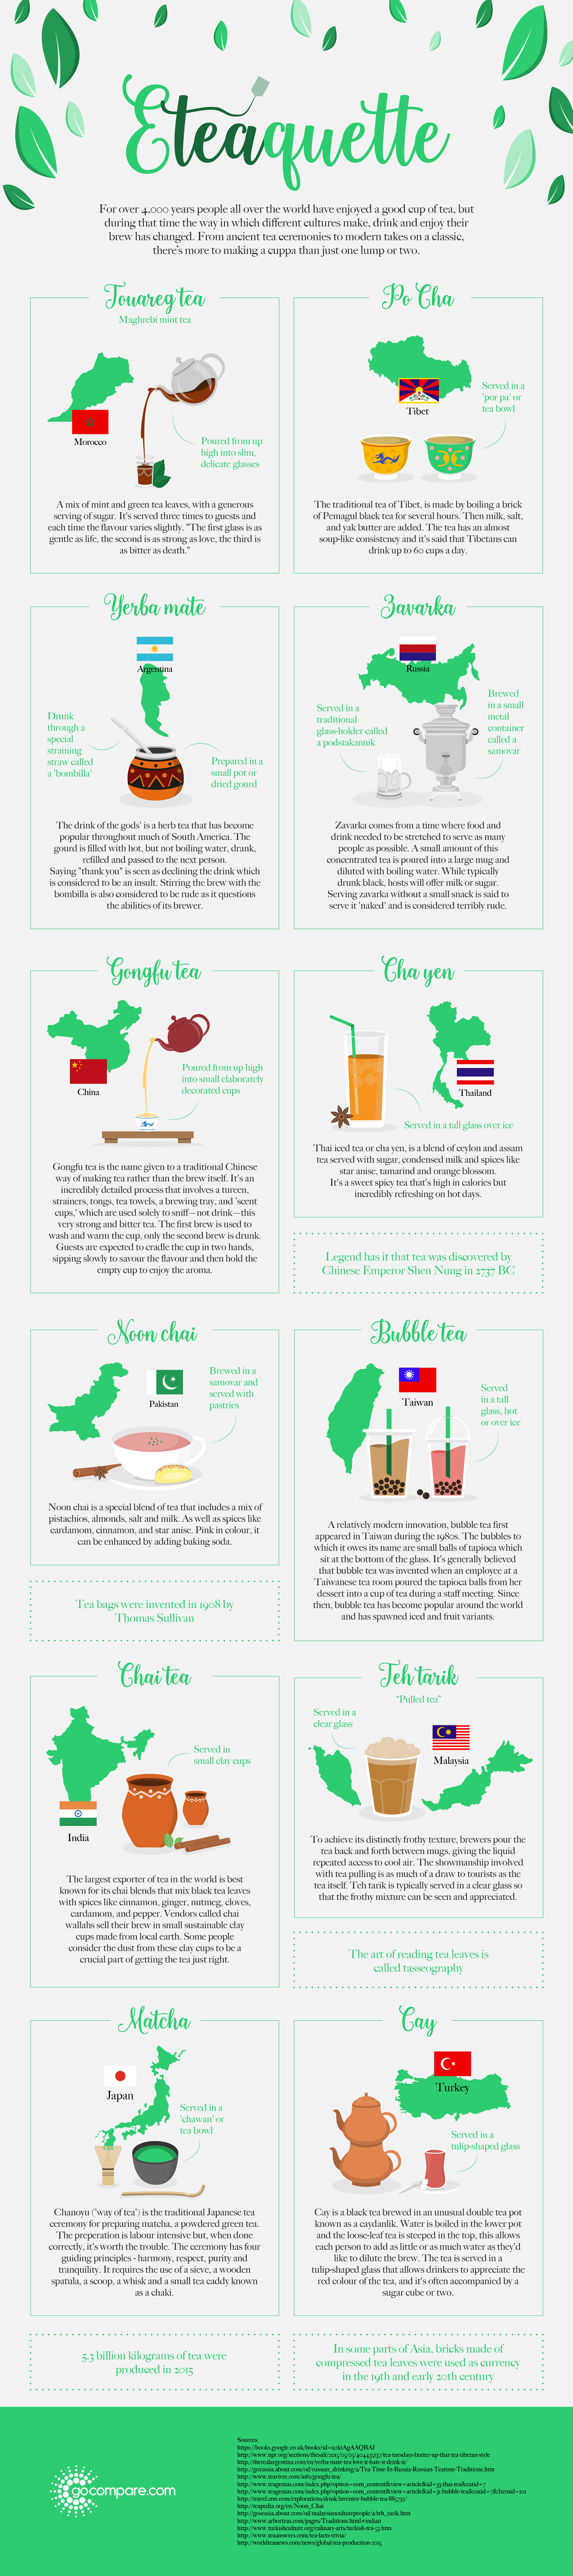 How tea is served around the world #infographic